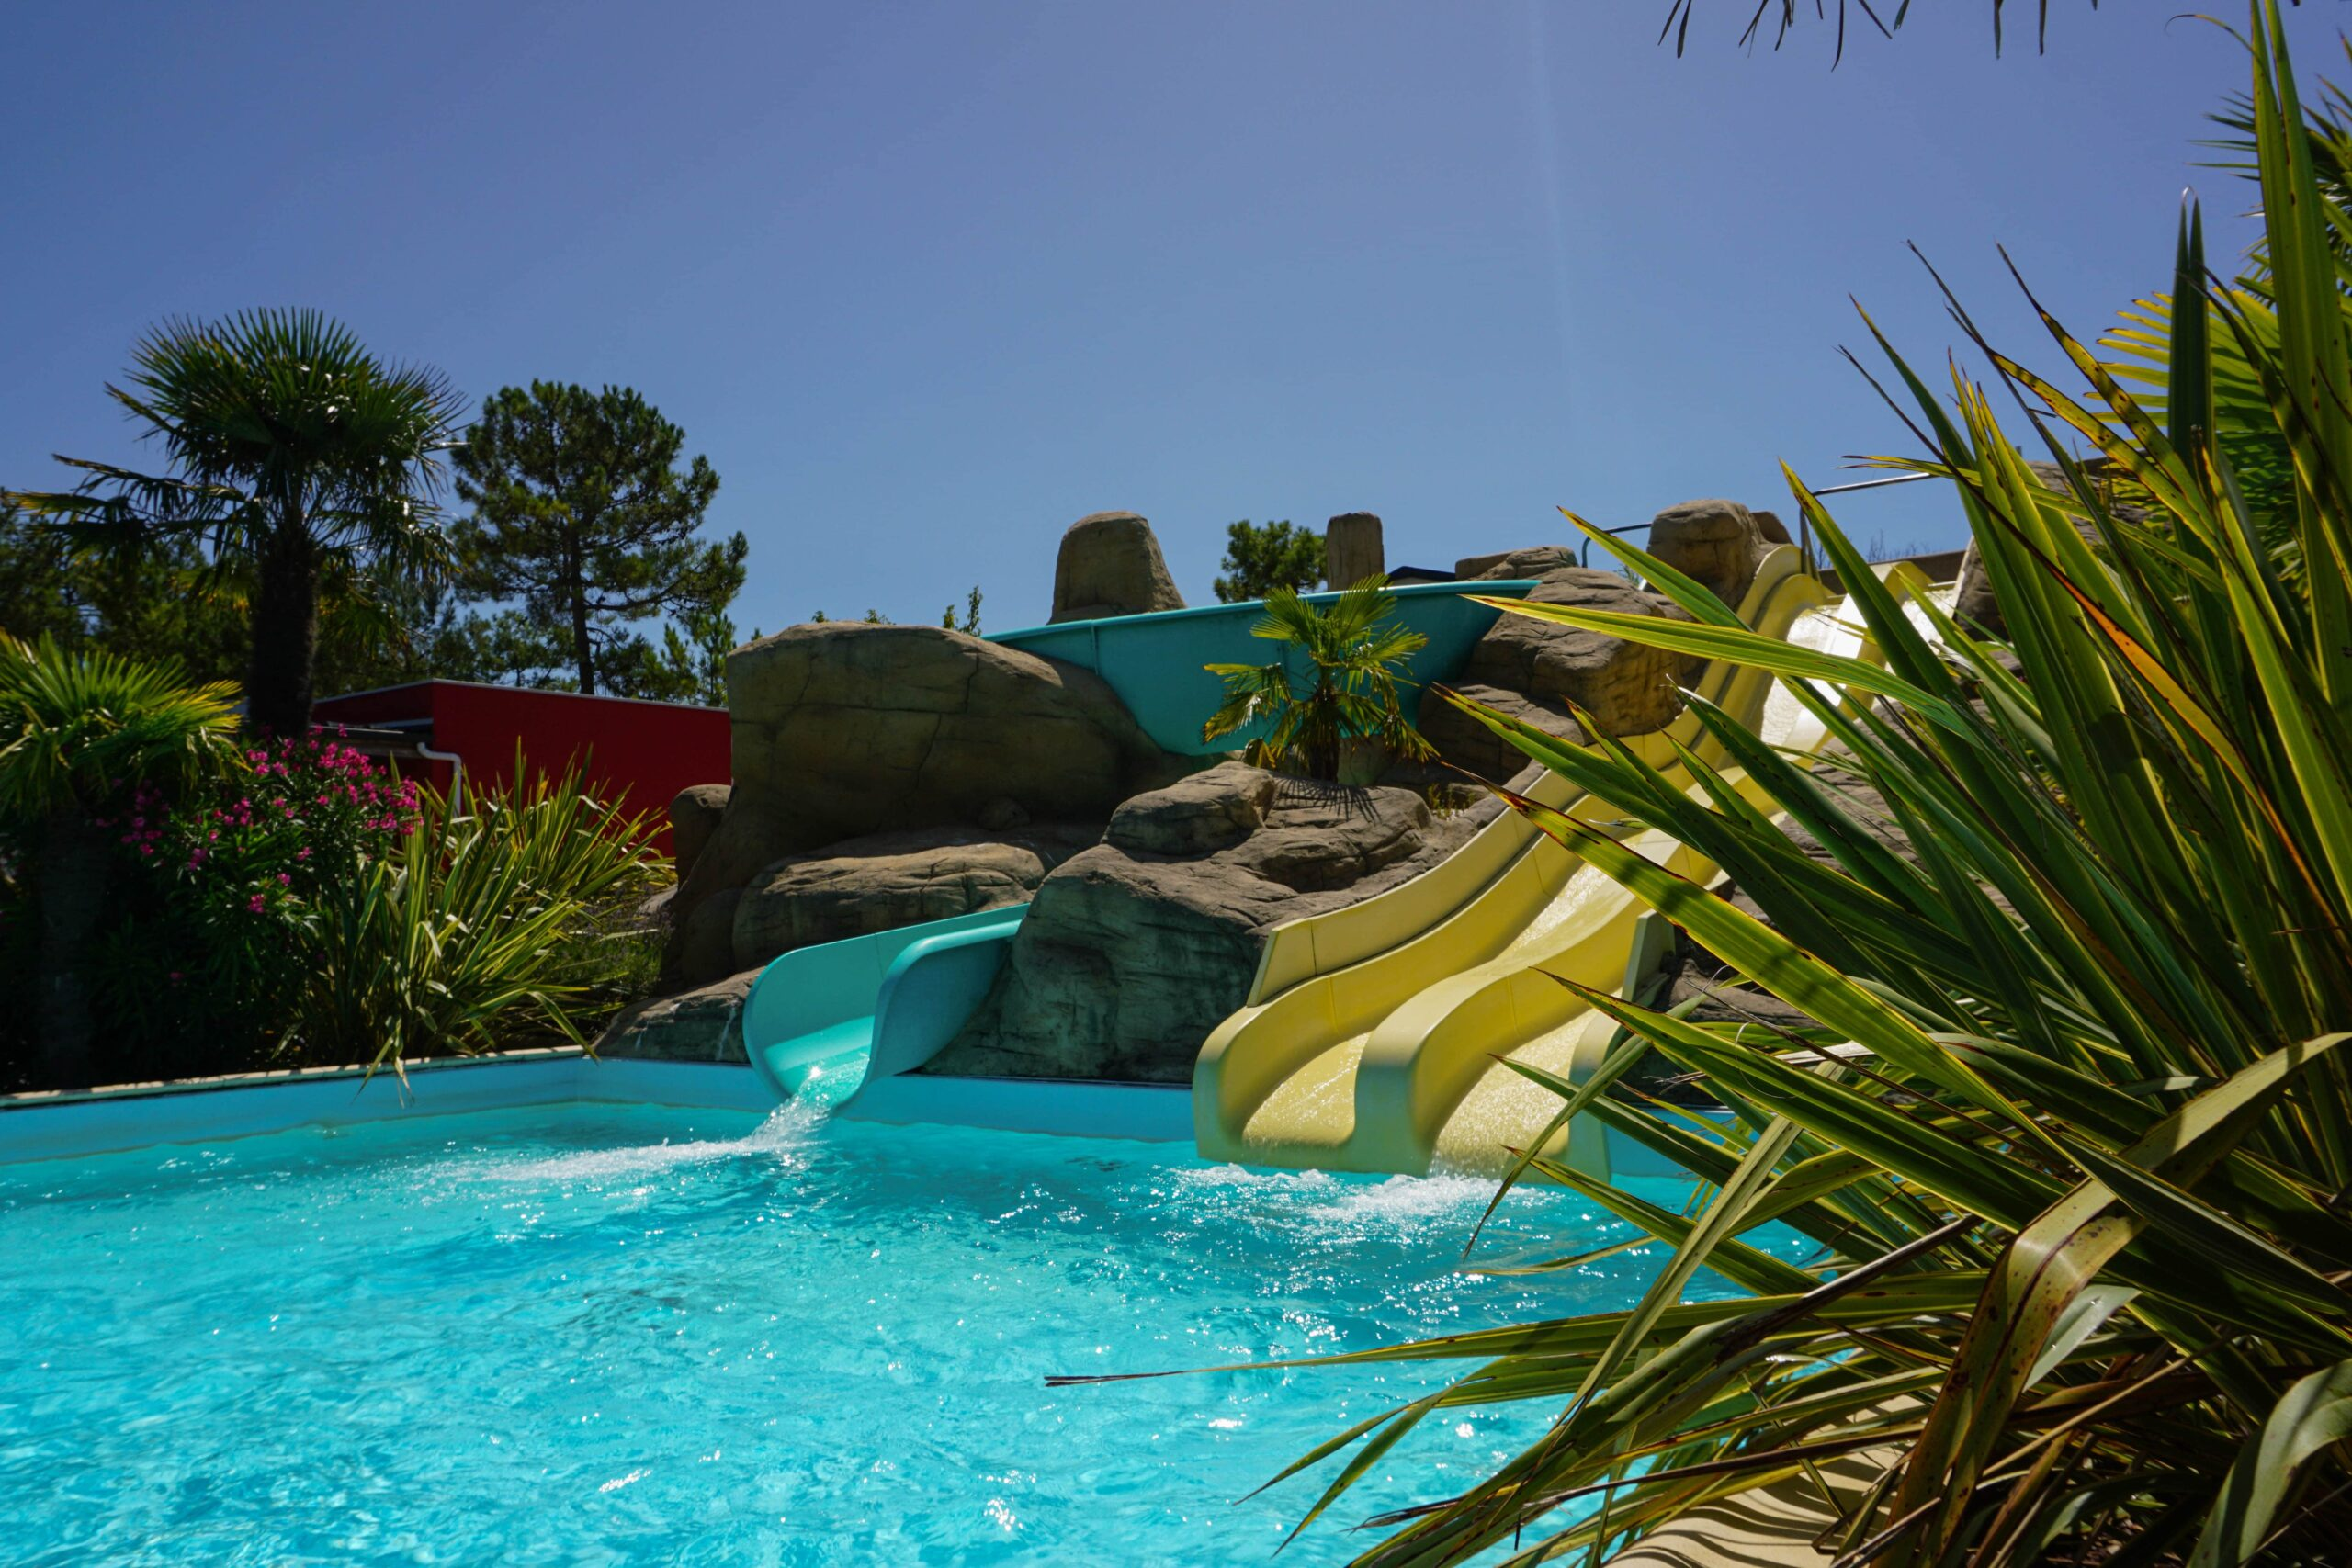 Vendée holiday with Le Tropicana water slide